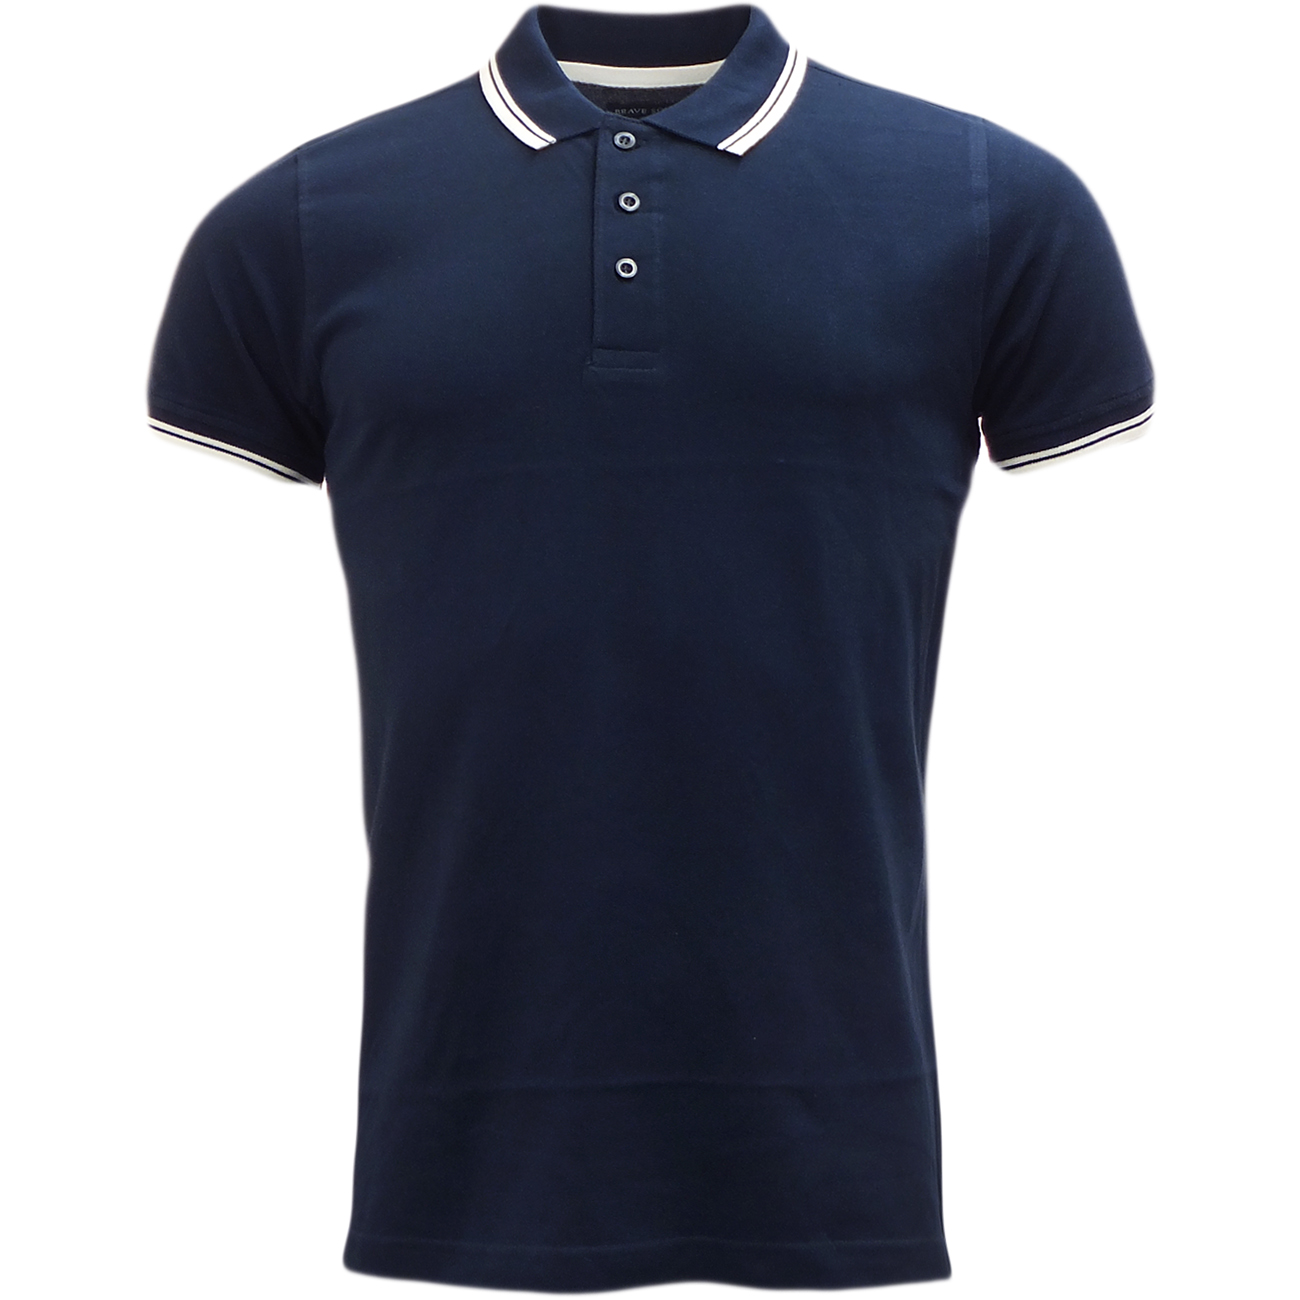 This iconic menswear shirt has been a style staple for longer than you probably realize. When thinking about the short-sleeve shirt, certain brands come to mind — Lacoste, Fred Perry, and Ralph Lauren all had a hand in making the modern polo shirt popular, and they're still making the best ones you'll want to score this season.